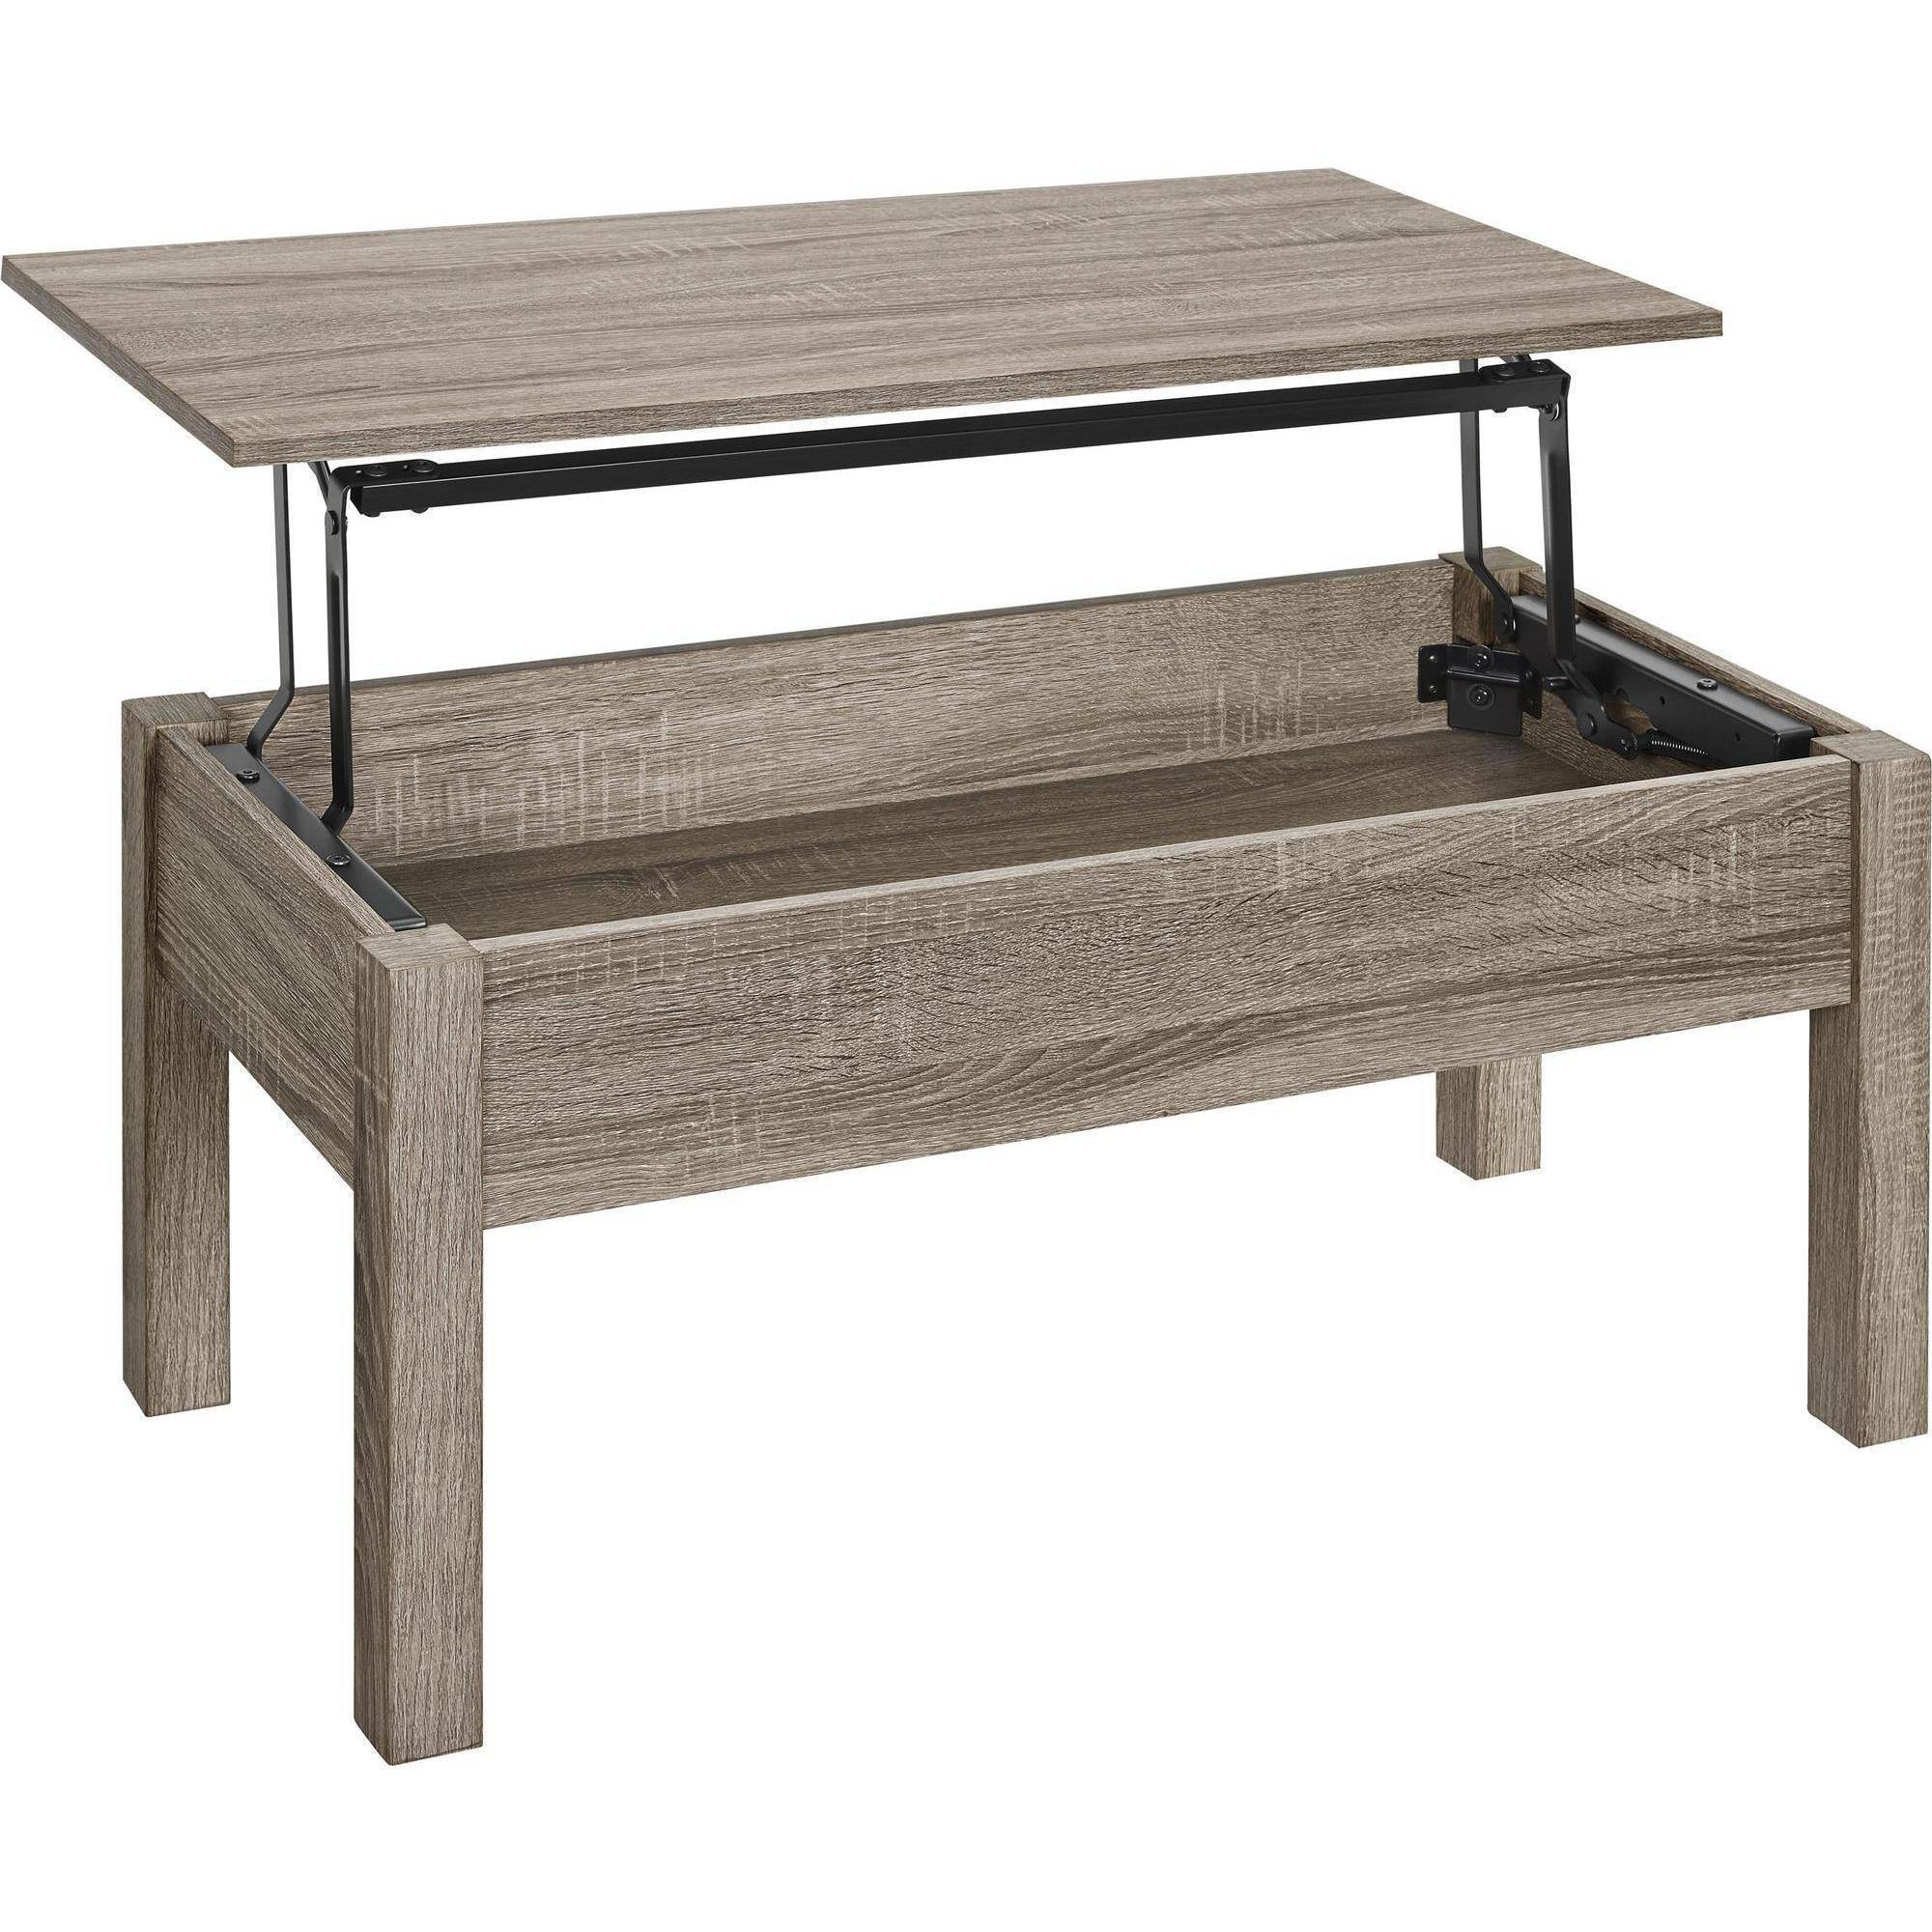 Mainstays Lift Top Coffee Table, Multiple Colors – Walmart Inside Swing Up Coffee Tables (View 17 of 30)